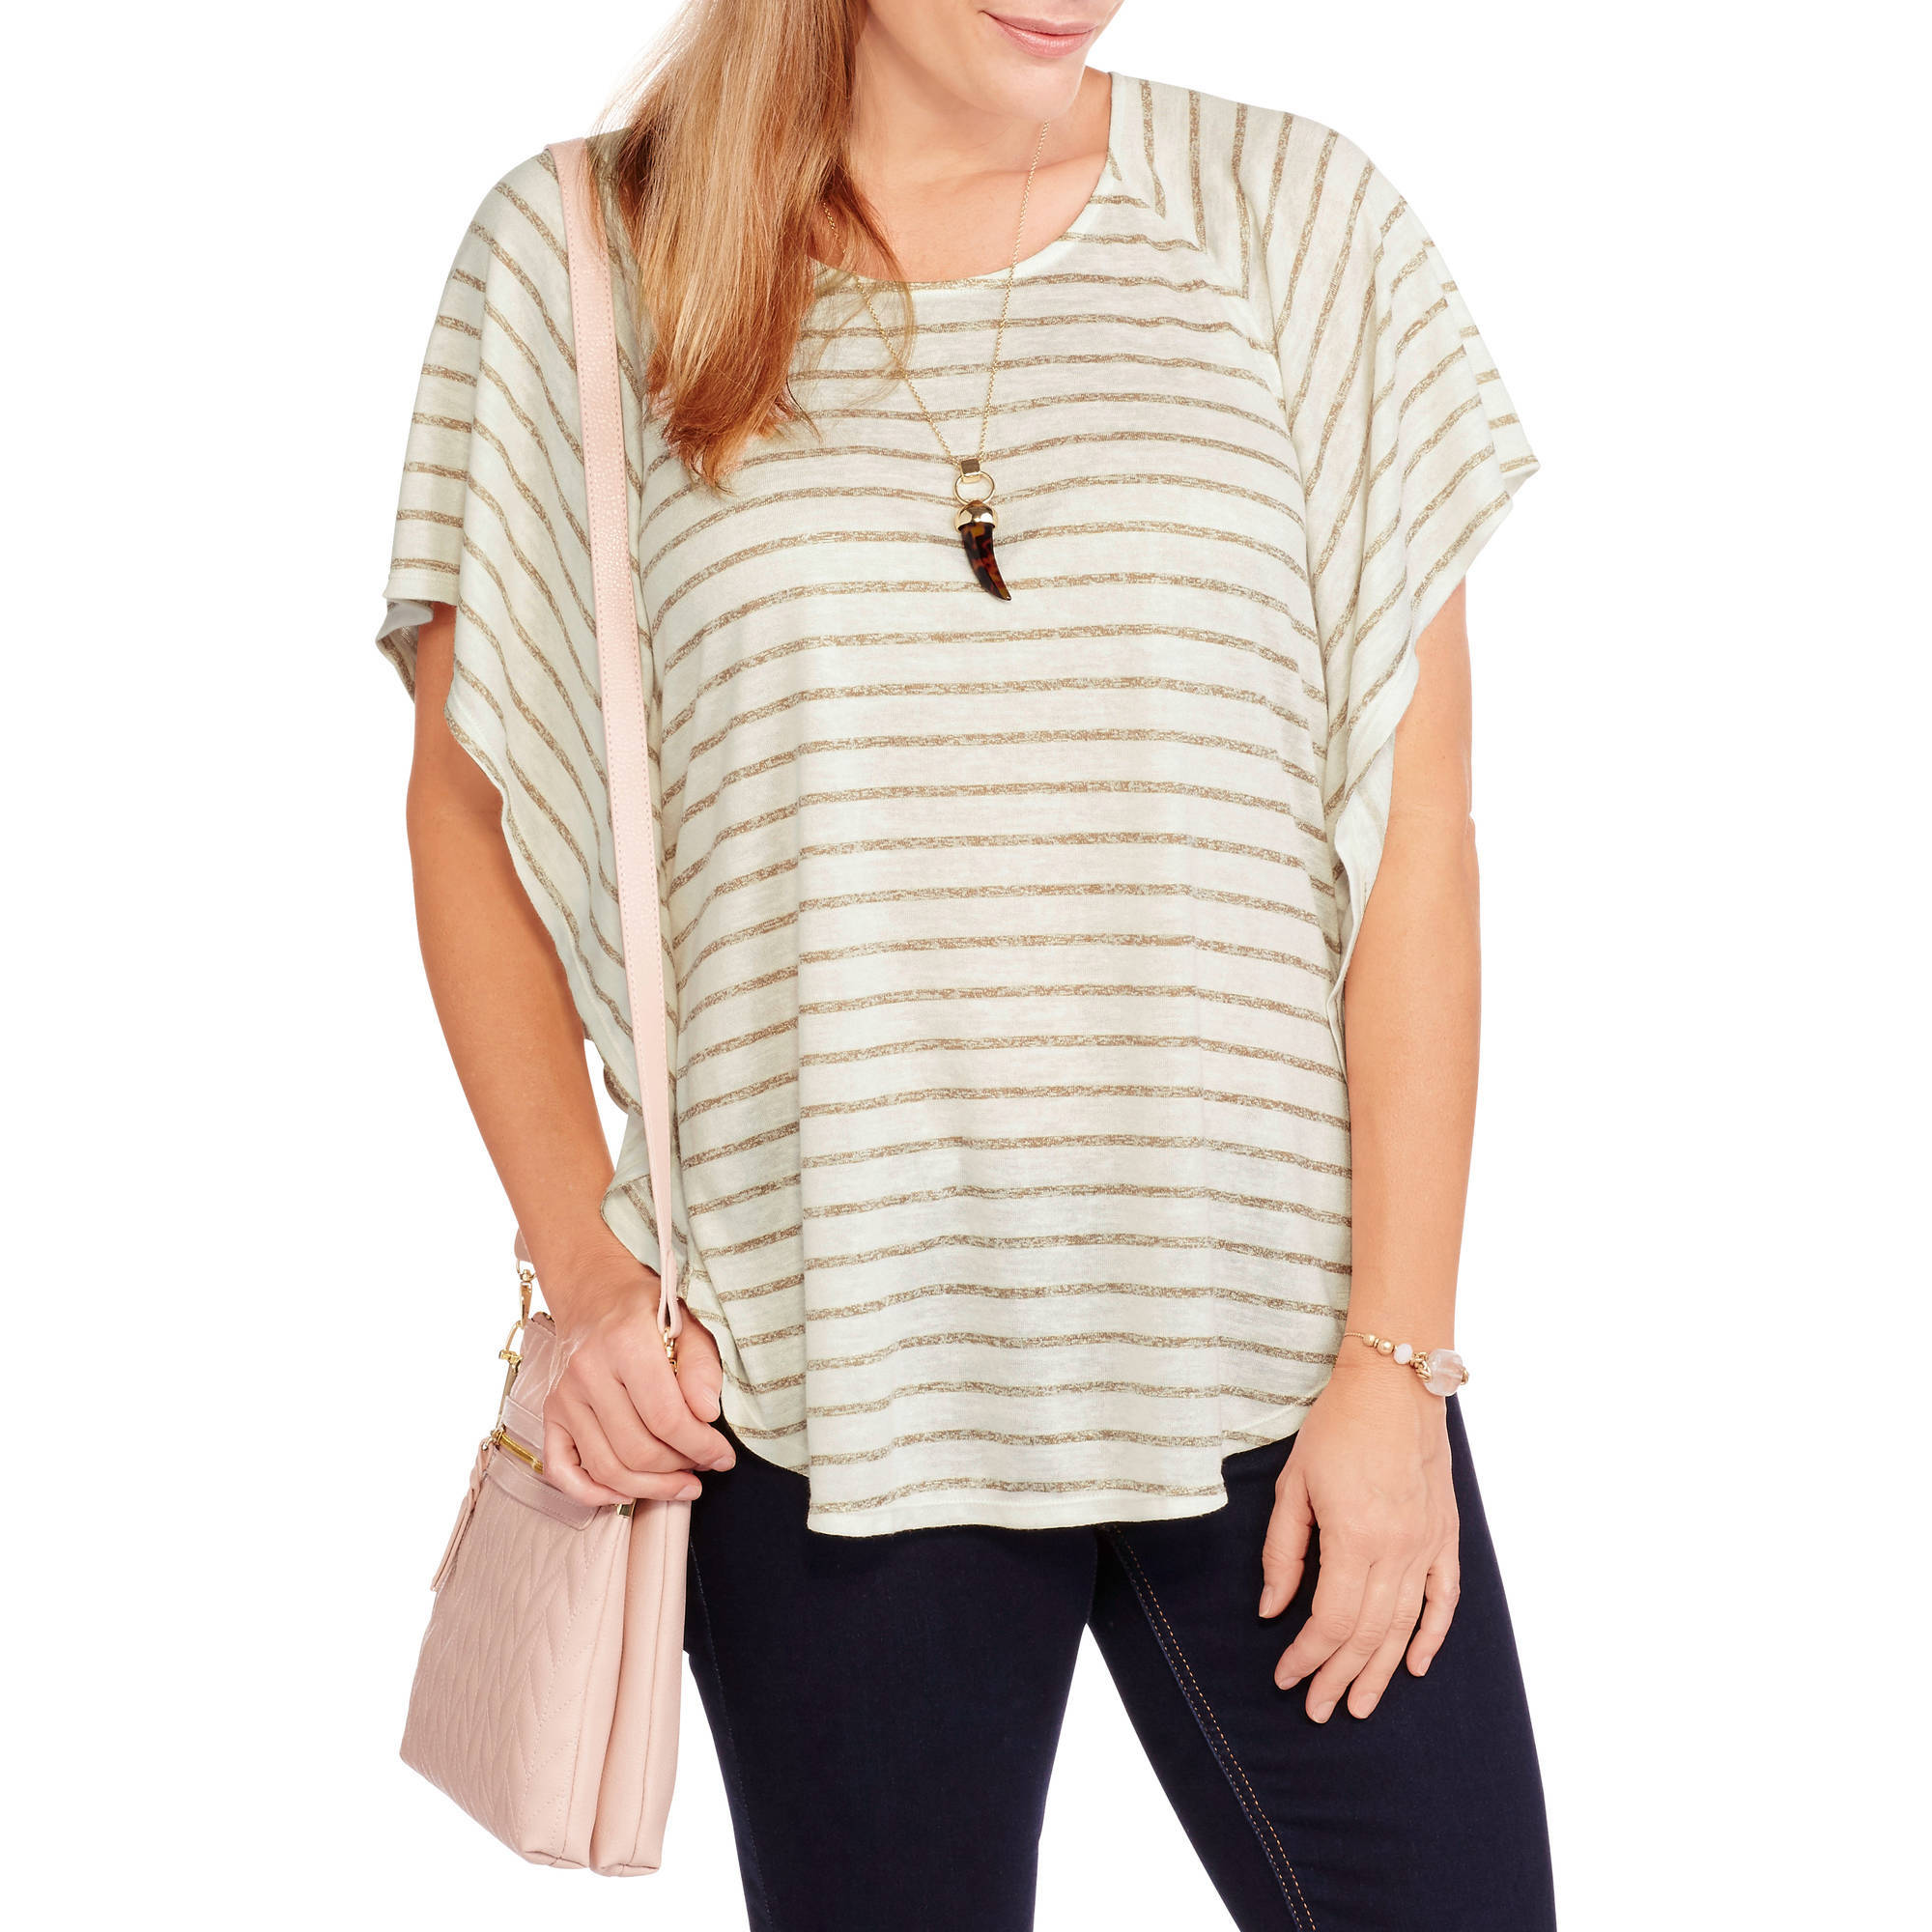 Faded Glory Women's Soft Knit Poncho Top